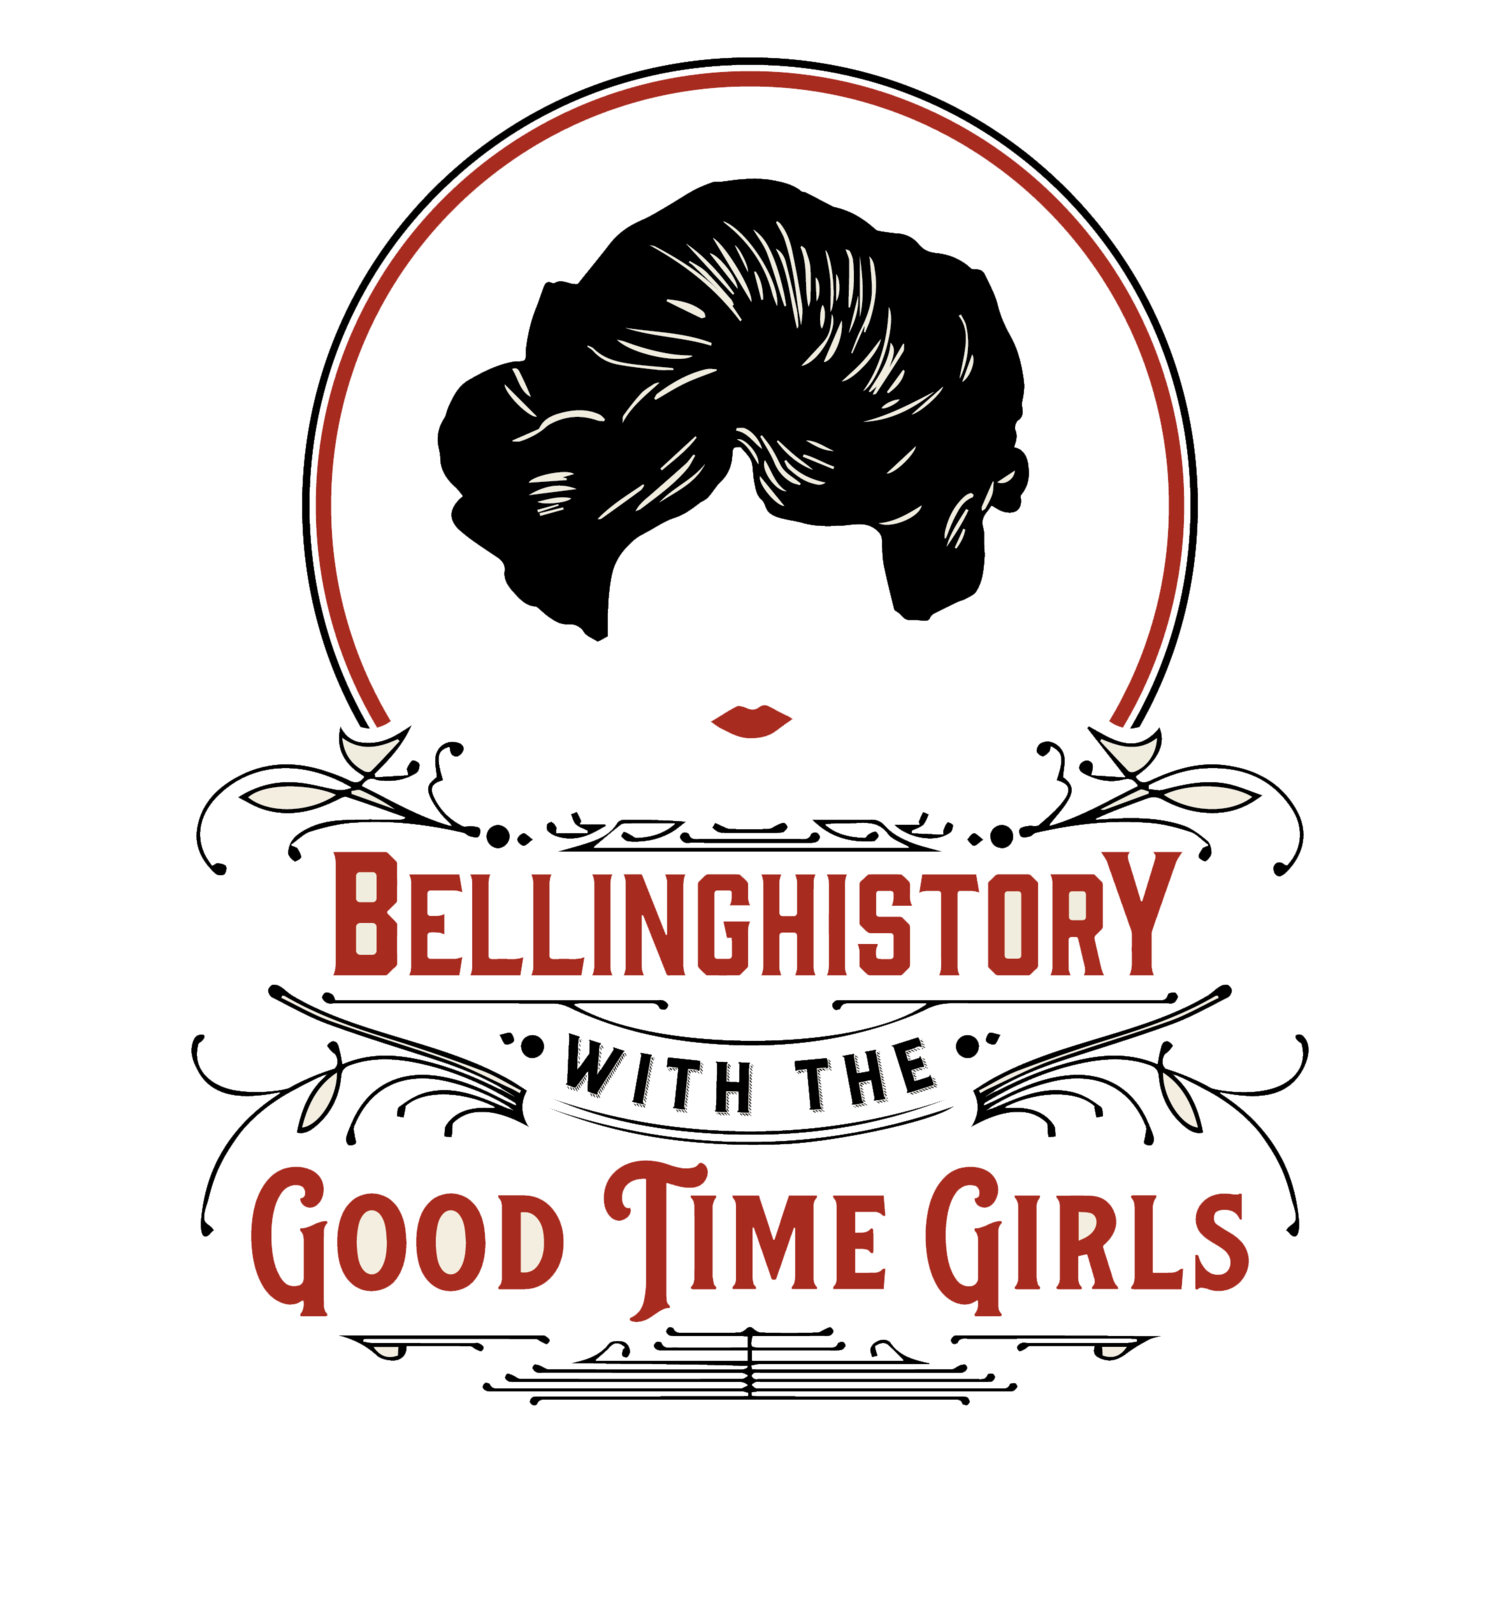 BELLINGHISTORY with the GOOD TIME GIRLS